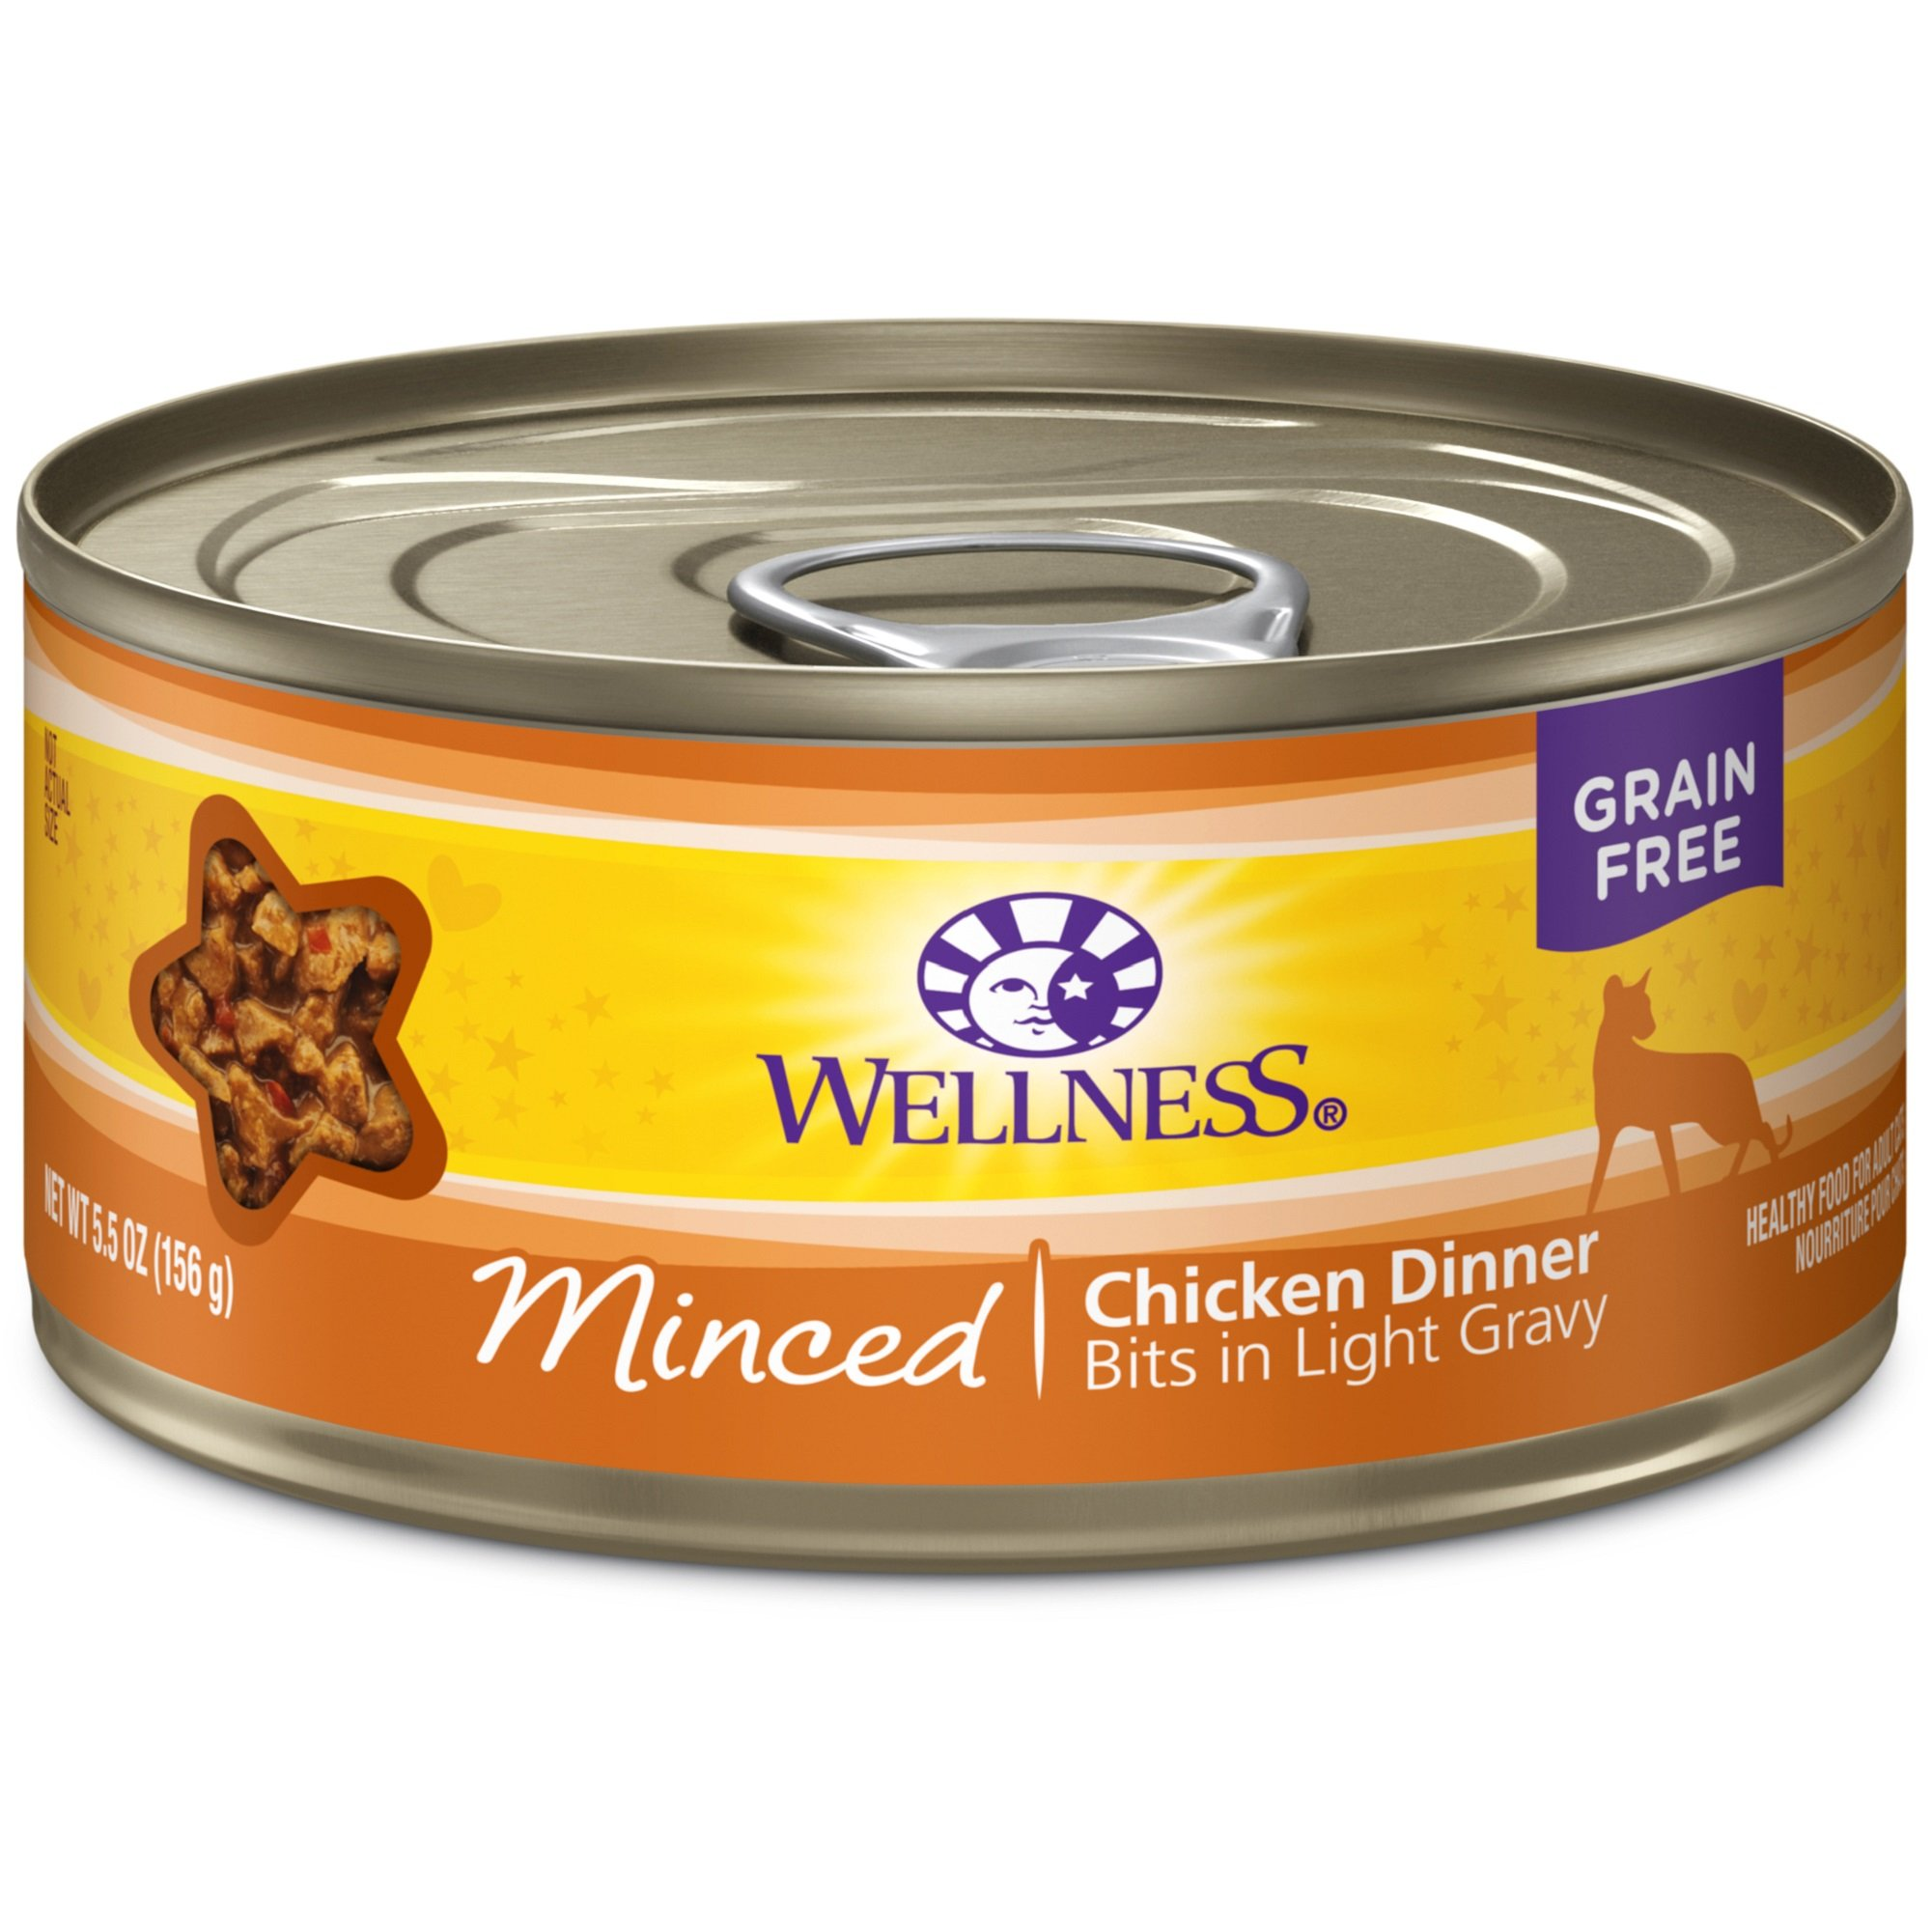 Wellness Complete Health Natural Grain Free Wet Canned Cat Food, Minced Chicken Dinner, 5.5-Ounce Can (Pack Of 24) by Wellness Natural Pet Food